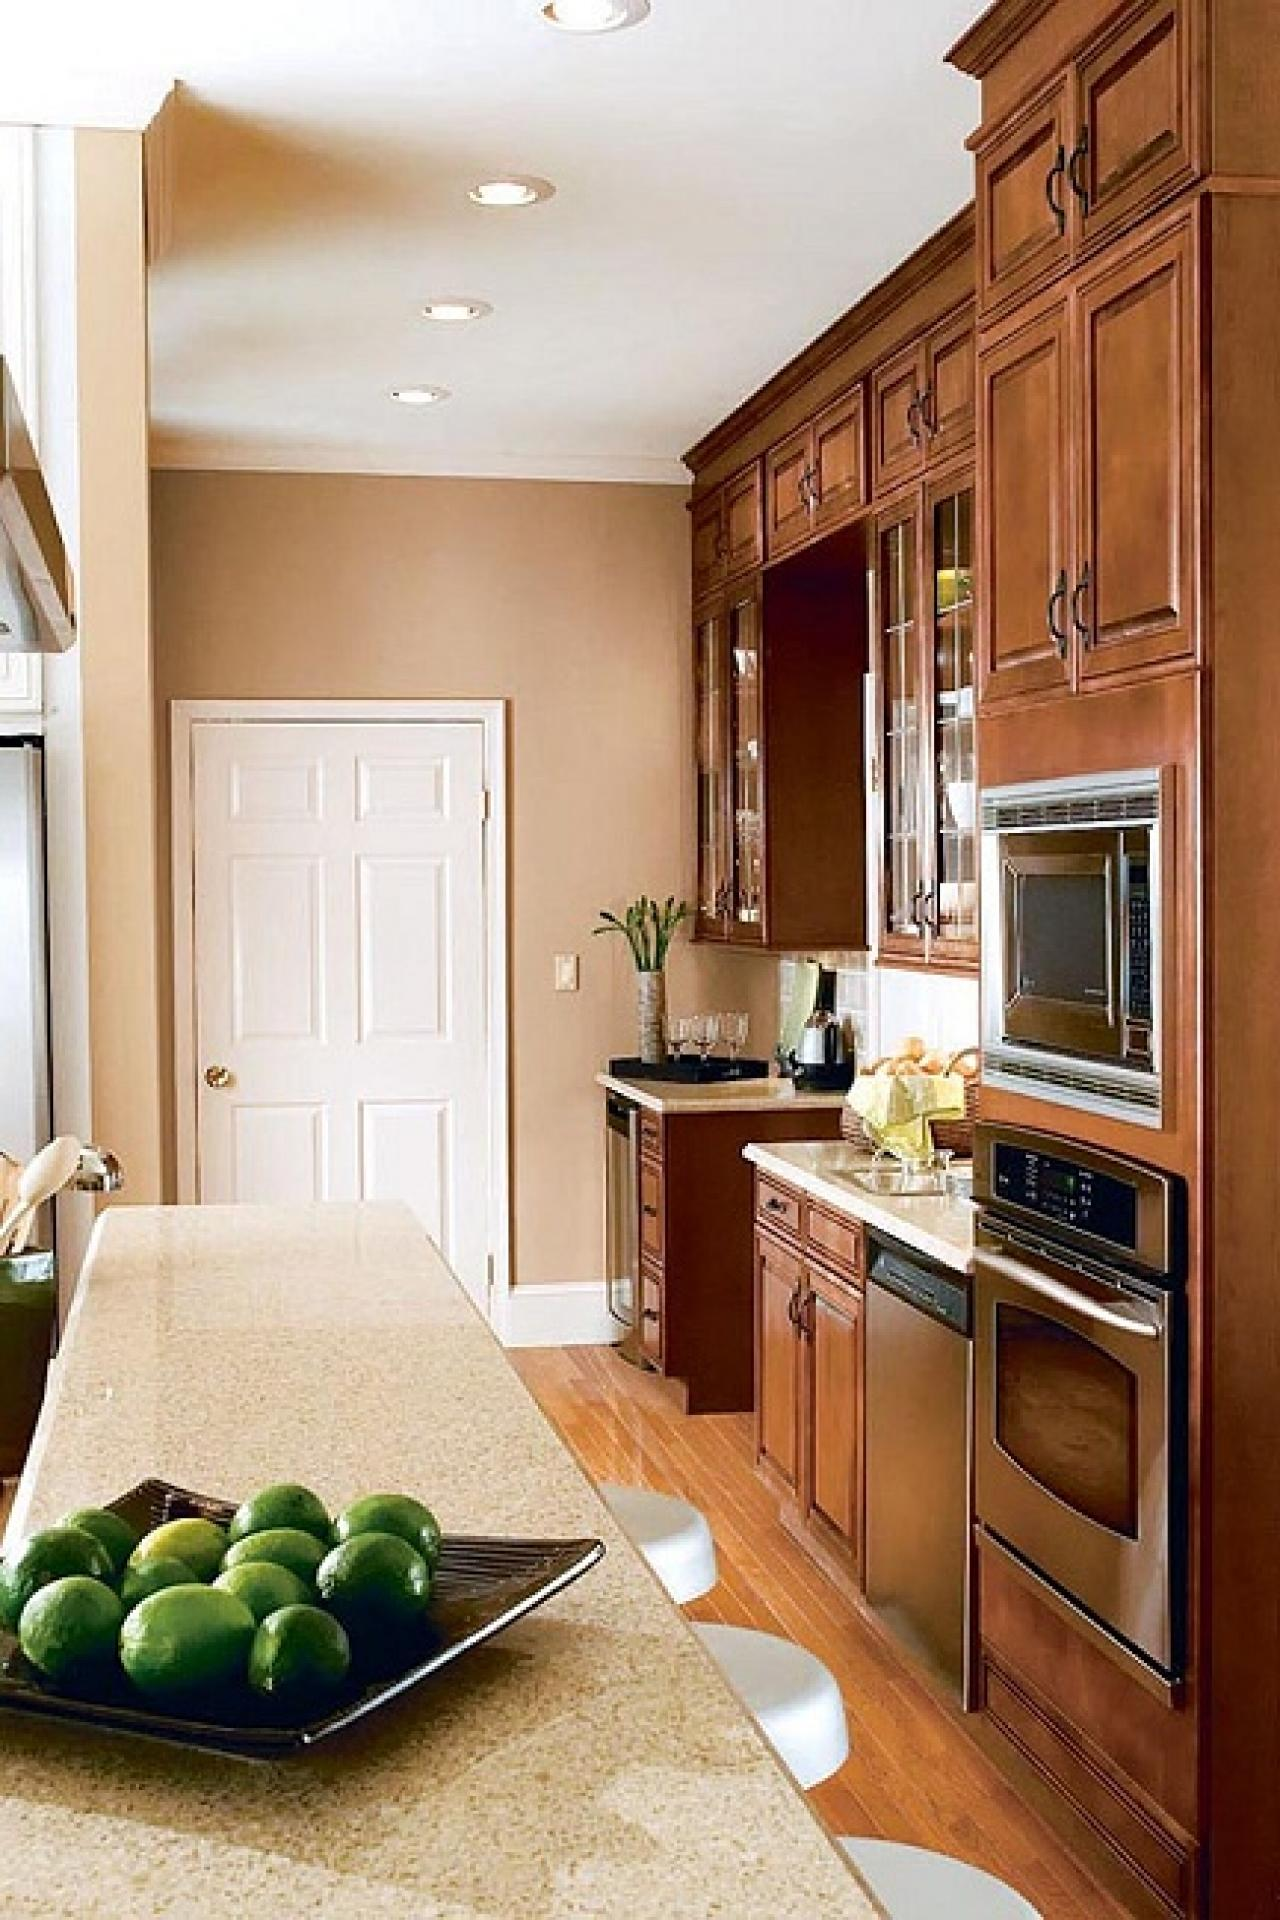 Kitchen Vertical Colors Bring Out Best3 Coordinate Your Countertop With The Wall Color